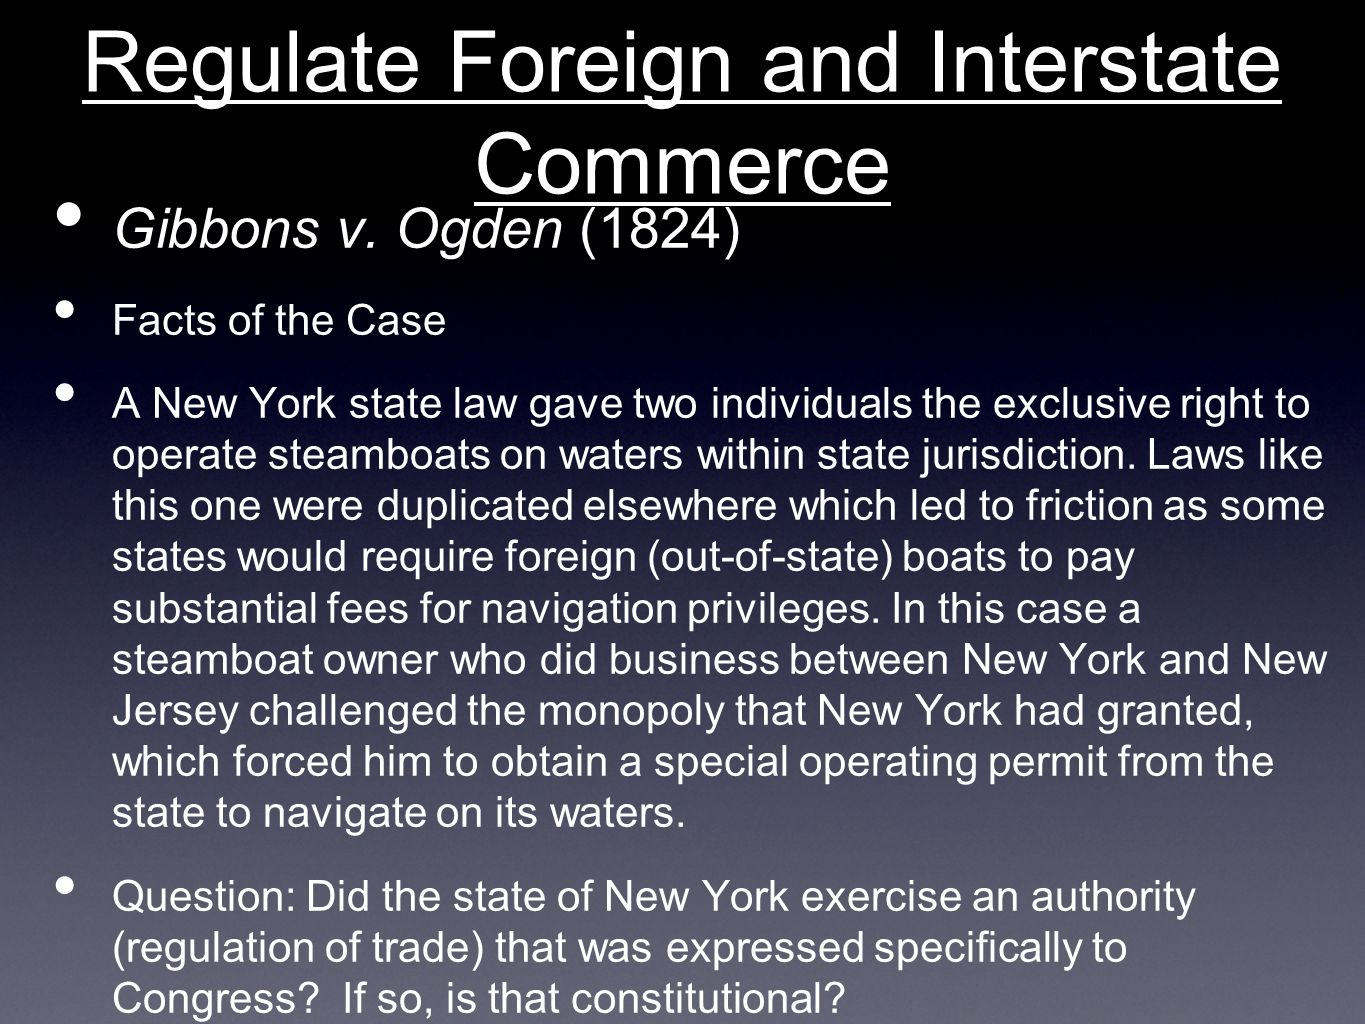 Regulate Foreign and Interstate Commerce